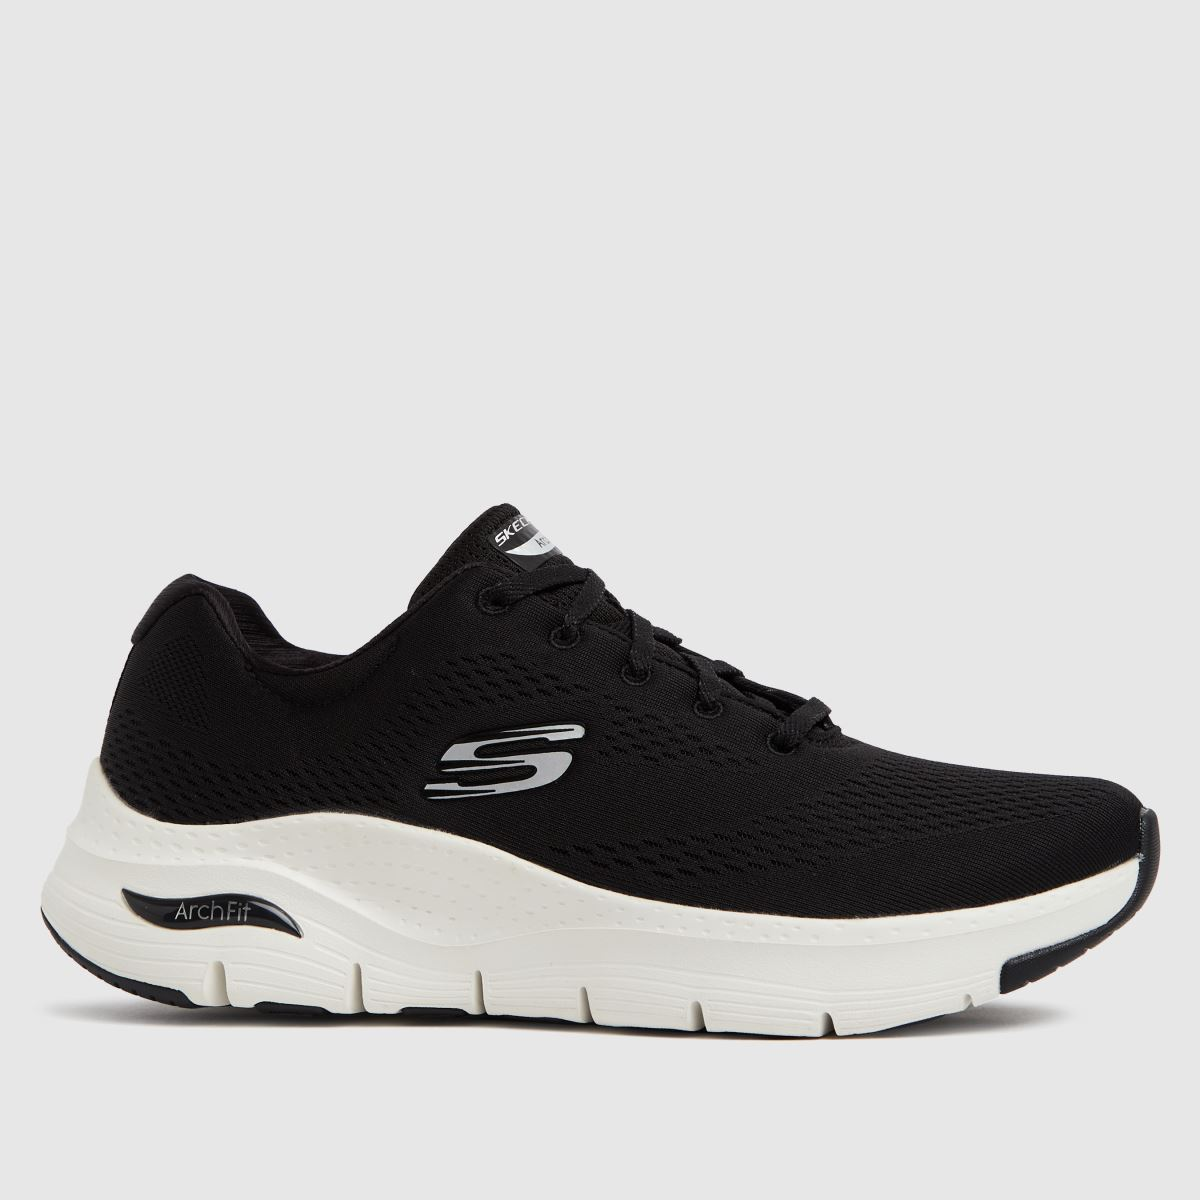 SKECHERS Black & White Arch Fit Big Appeal Trainers